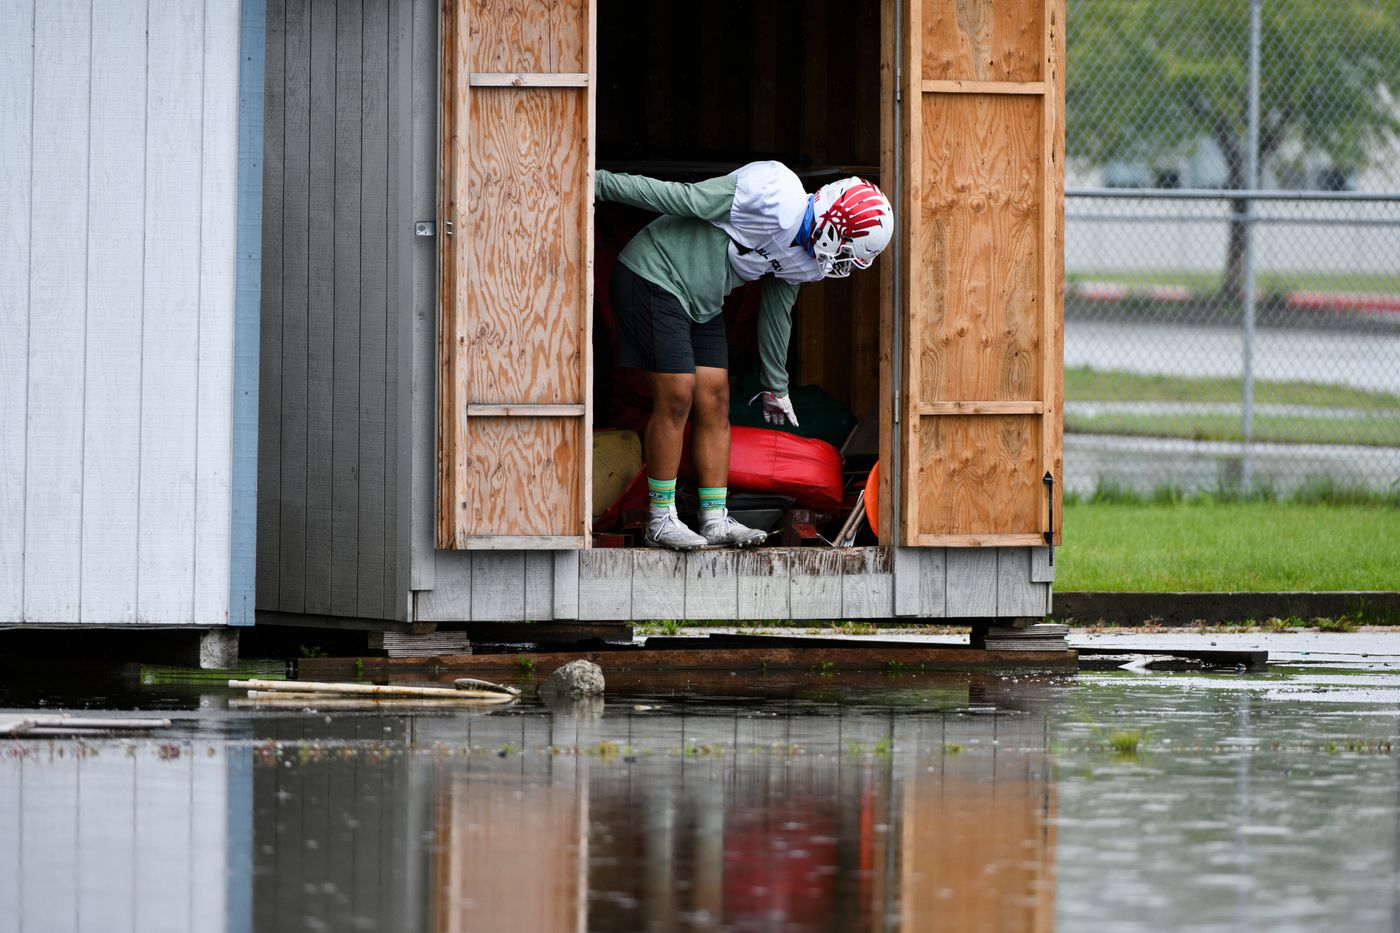 An East High player retrieves equipment from a shed during a rainy practice. (Marc Lester / ADN)